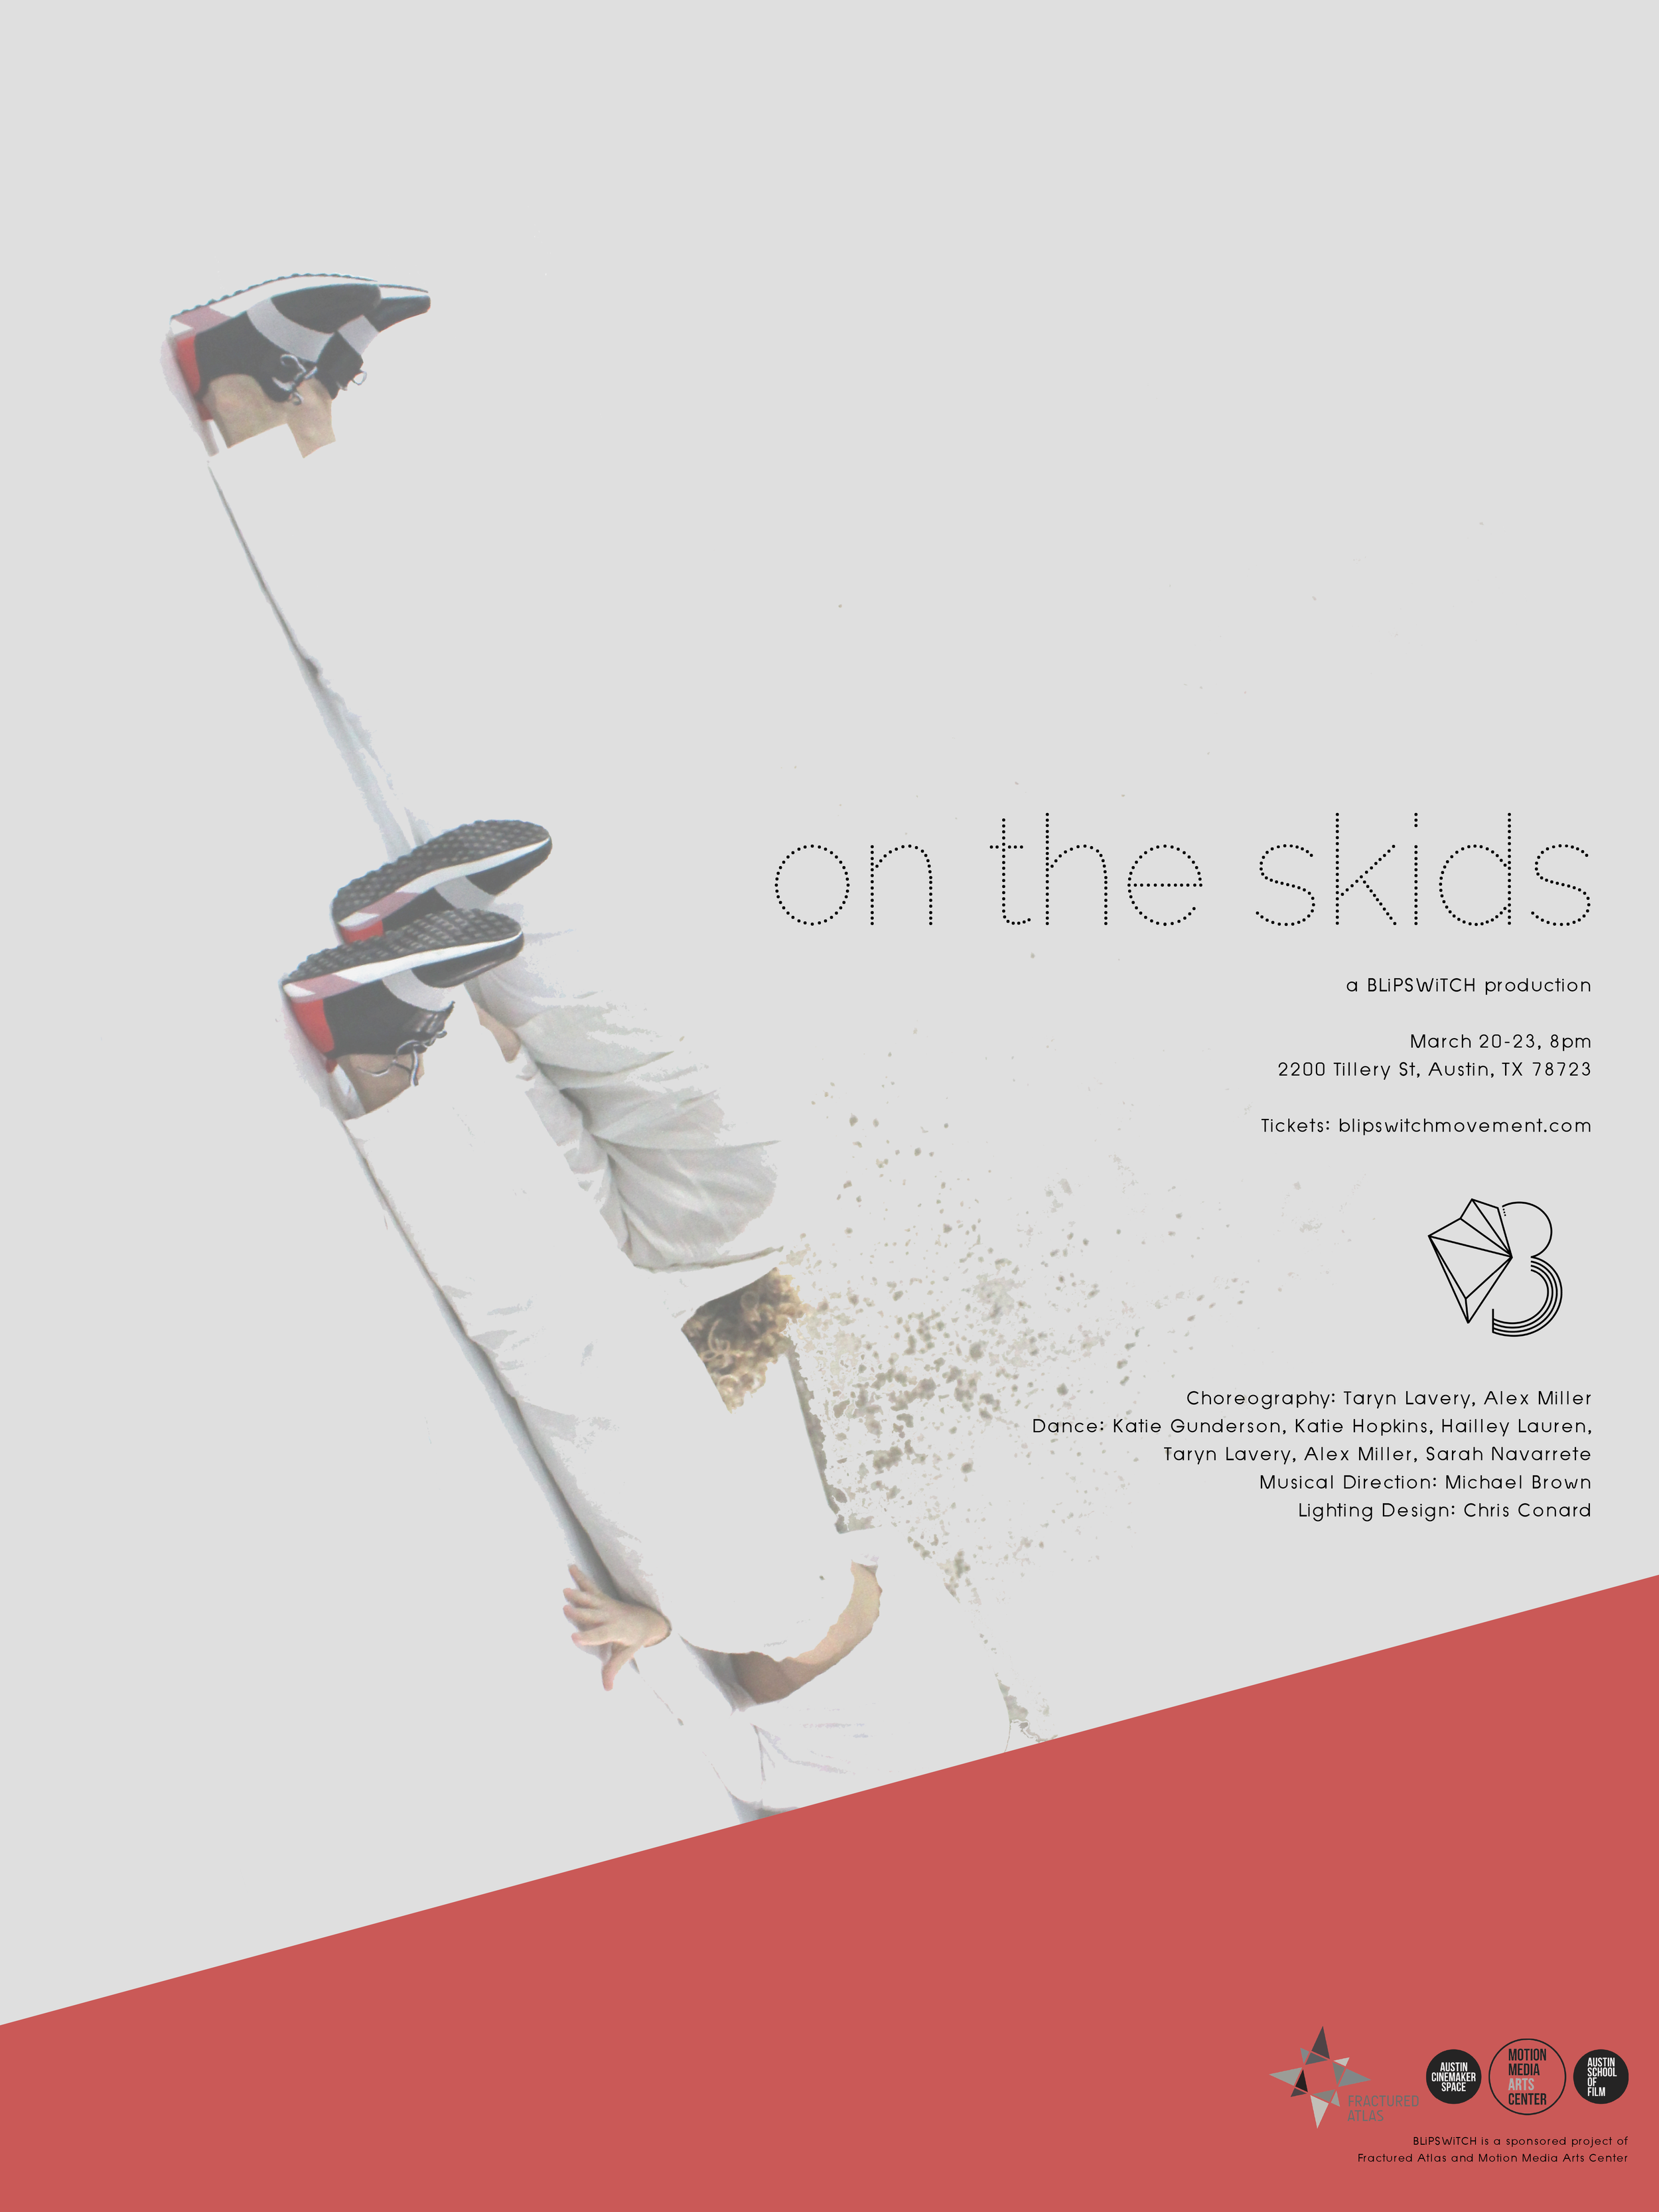 On The Skids -- a BLiPSWiTCH production